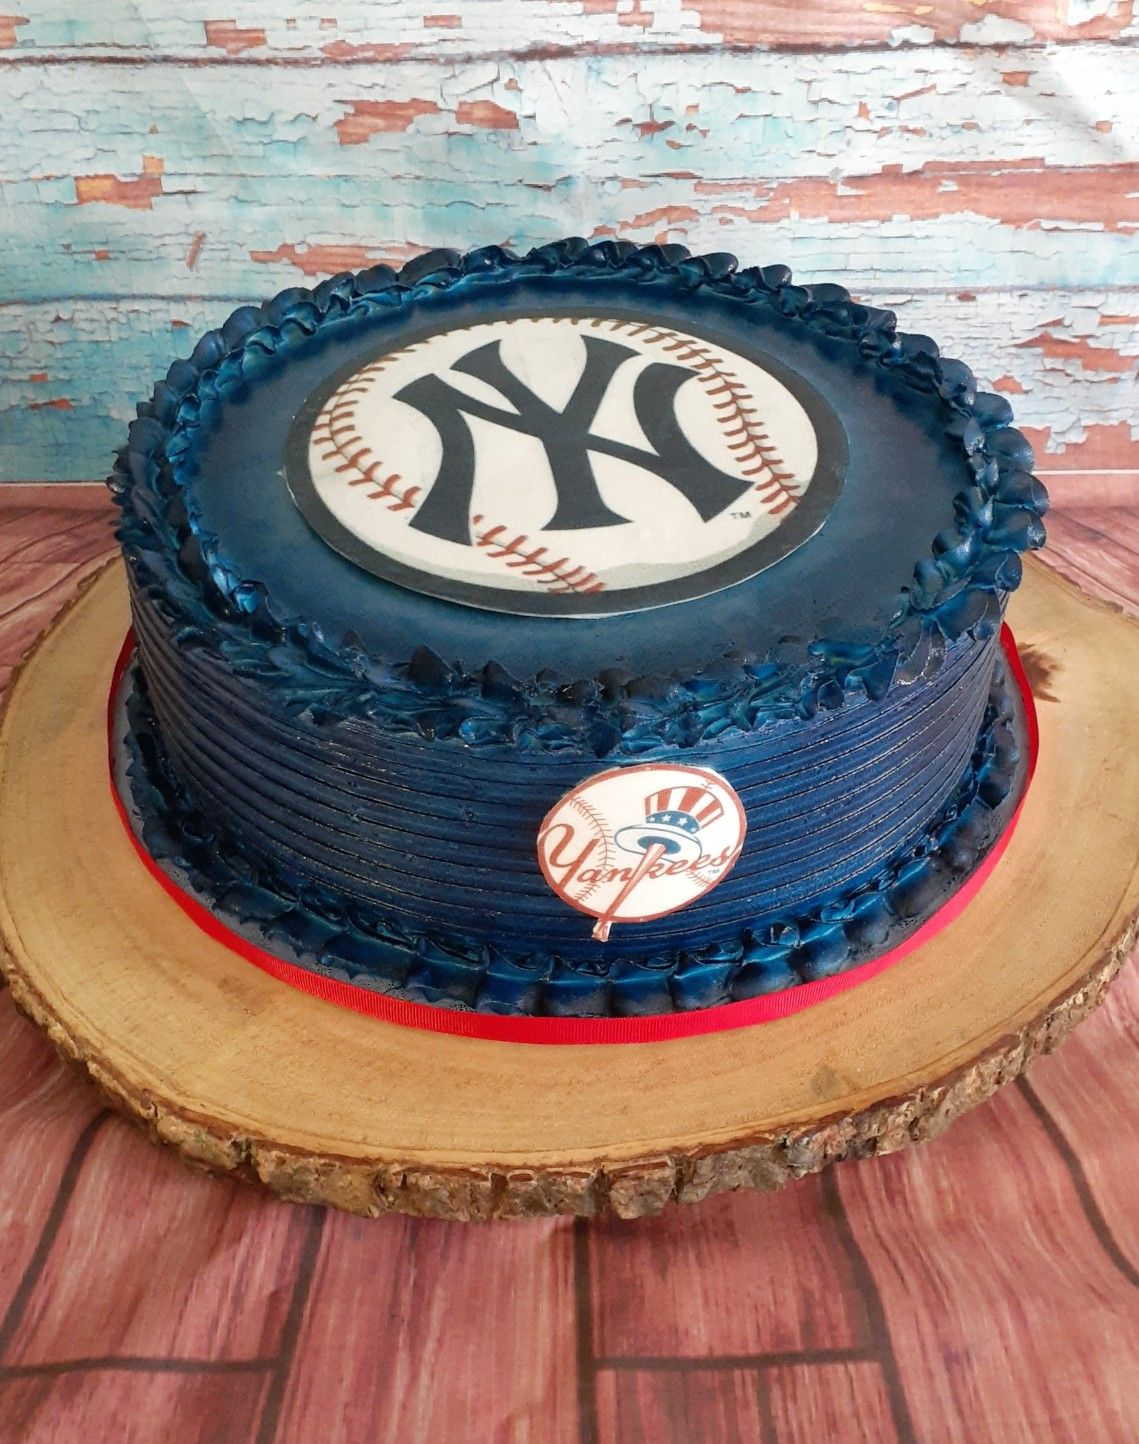 Pin By Dana Ferlito On Ny Yankee Ideas In 2020 Yankee Cake Yankees Birthday Cake Decorating